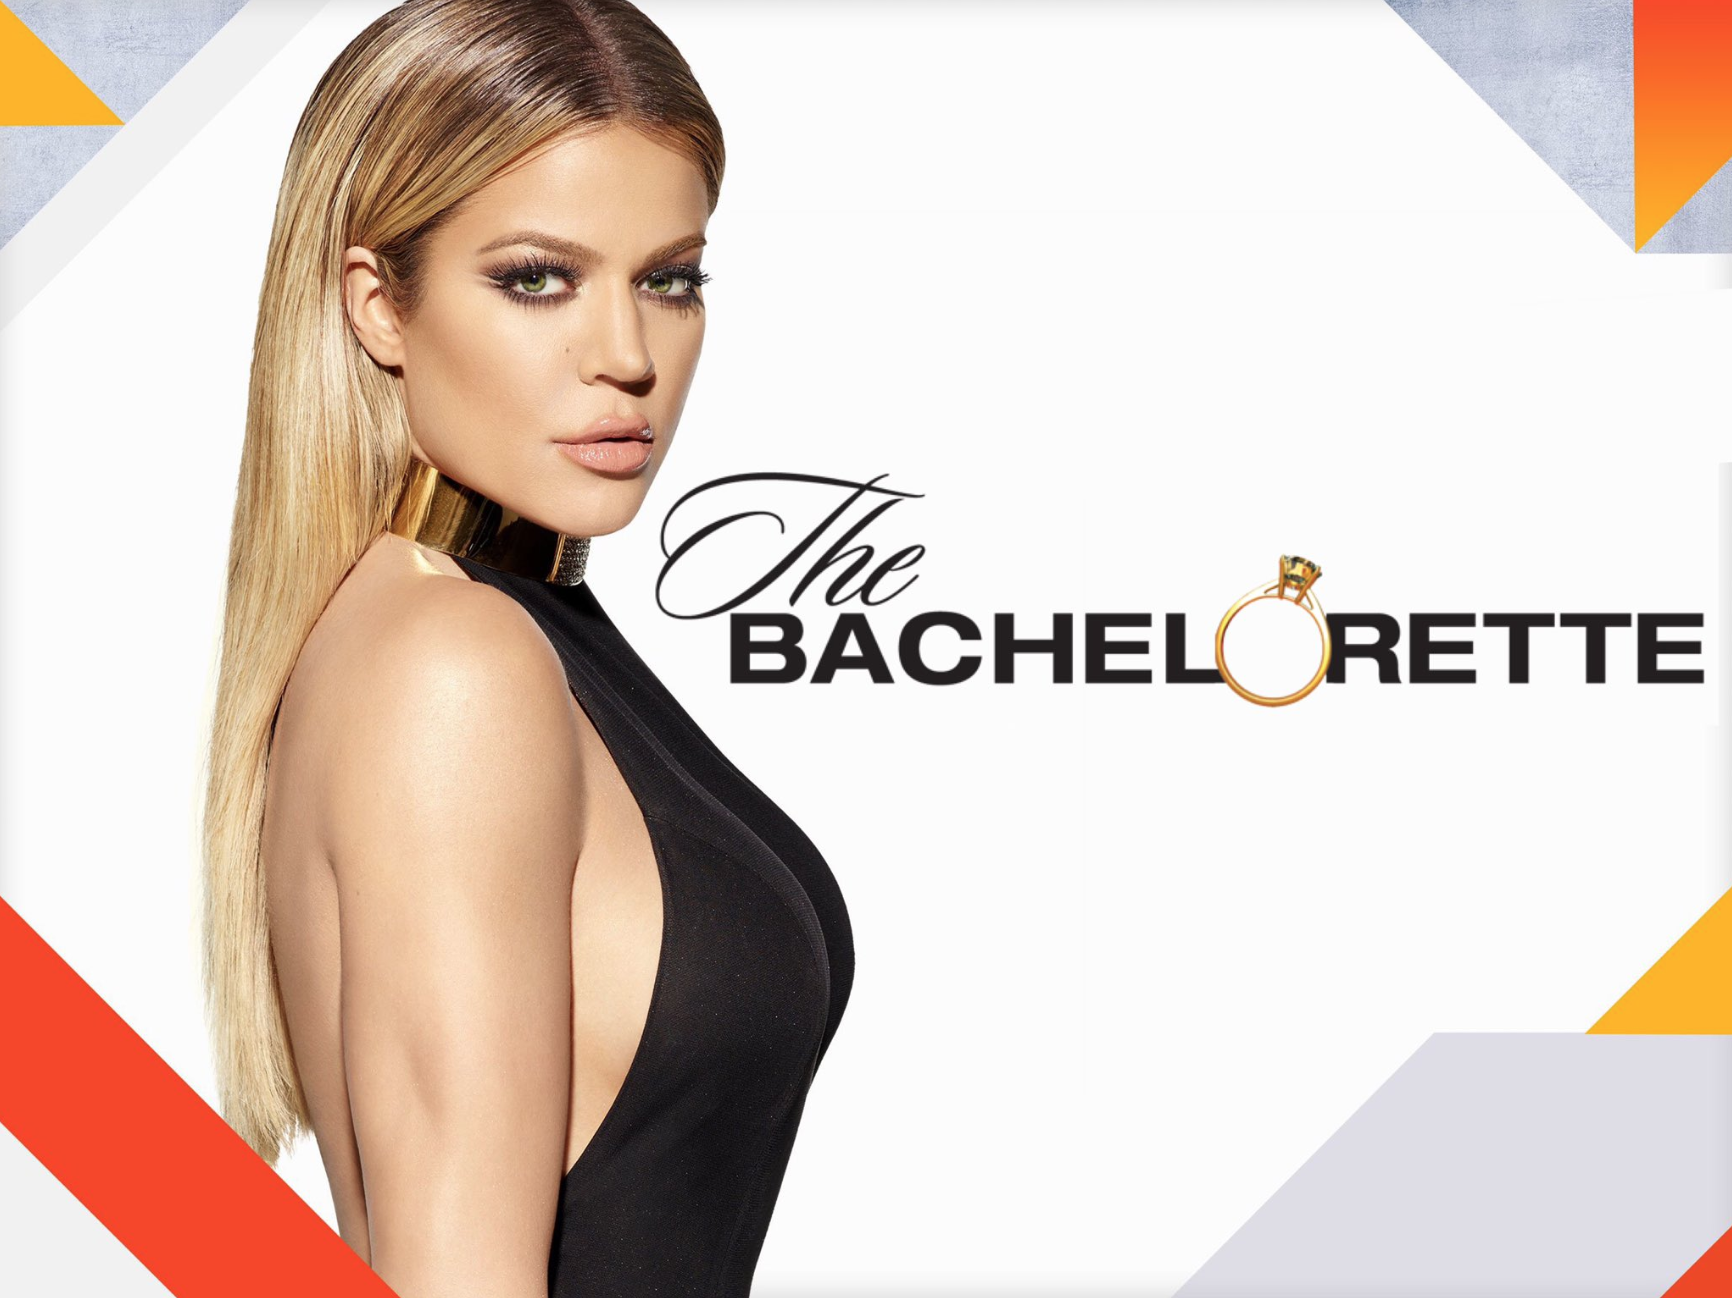 It Appears Khloe Kardashian Will Not Be The Next Bachelorette And It's Pretty Dumb Of Her